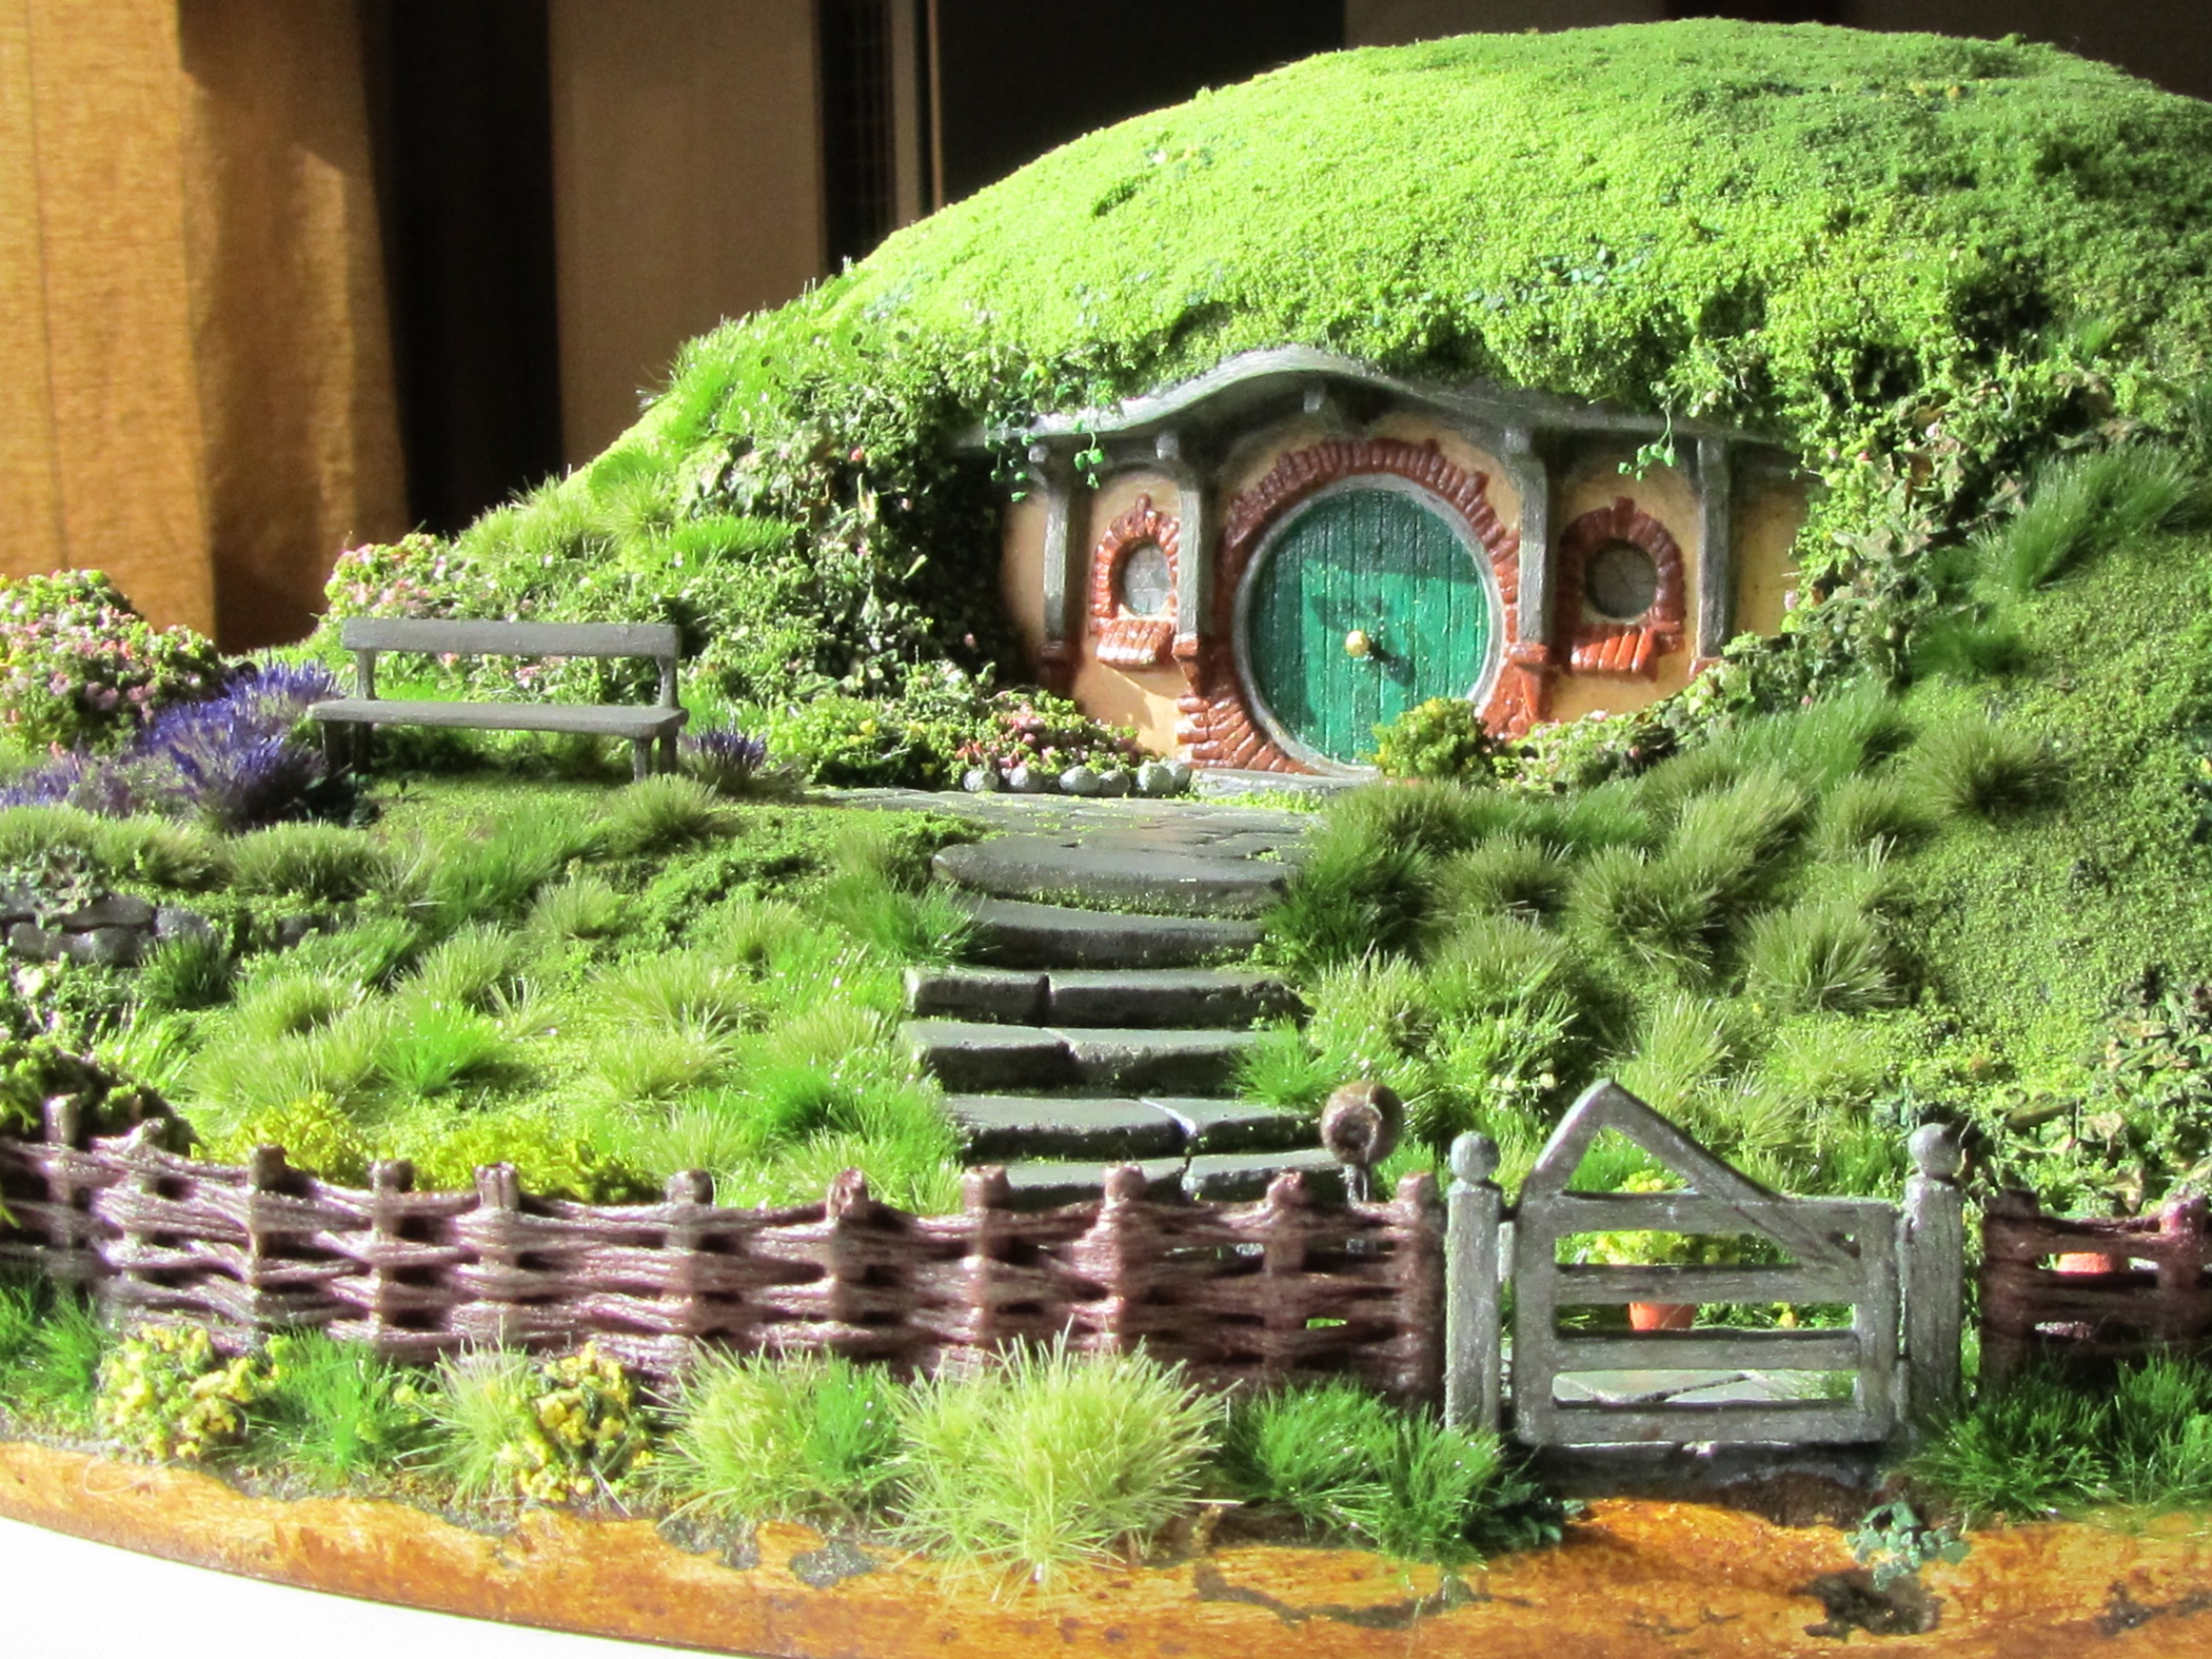 Hobbit house | fairiehollow.com